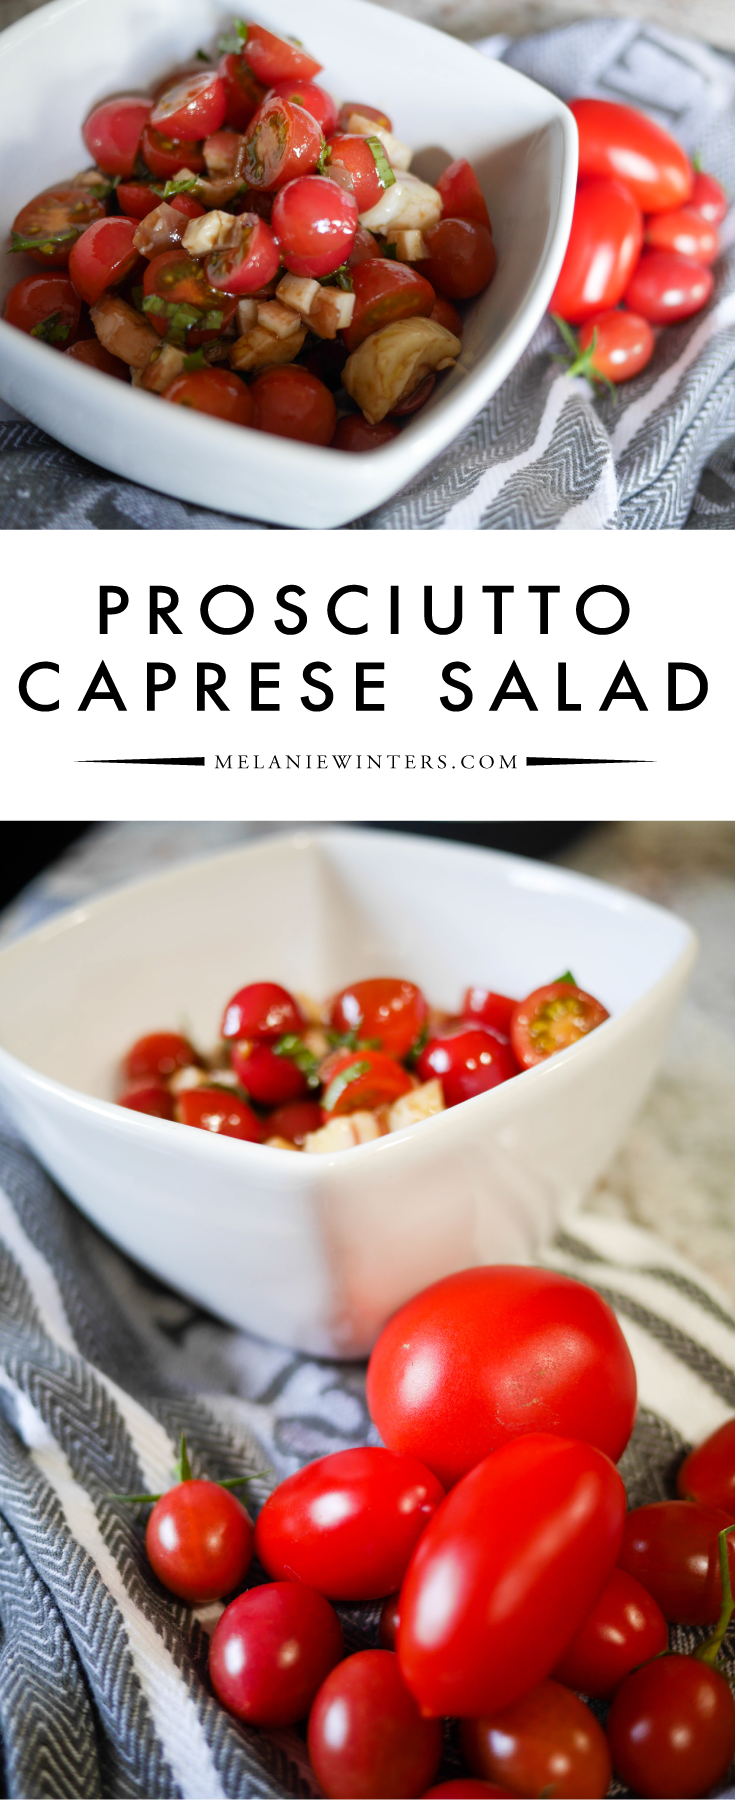 Salty prosciutto takes a simple Caprese Salad to the next level.